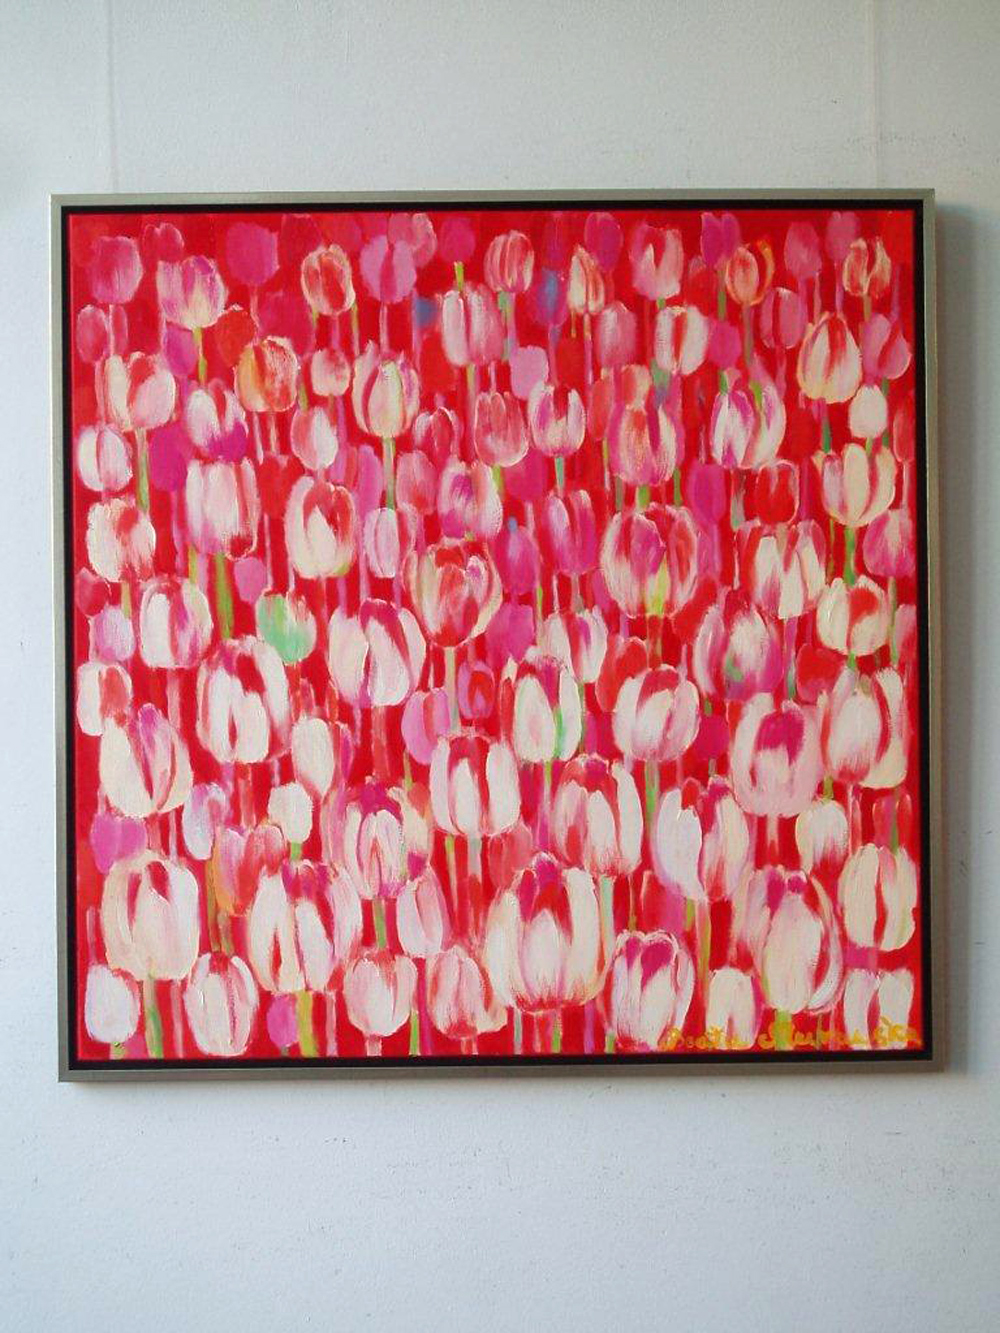 Beata Murawska : Pink square painting